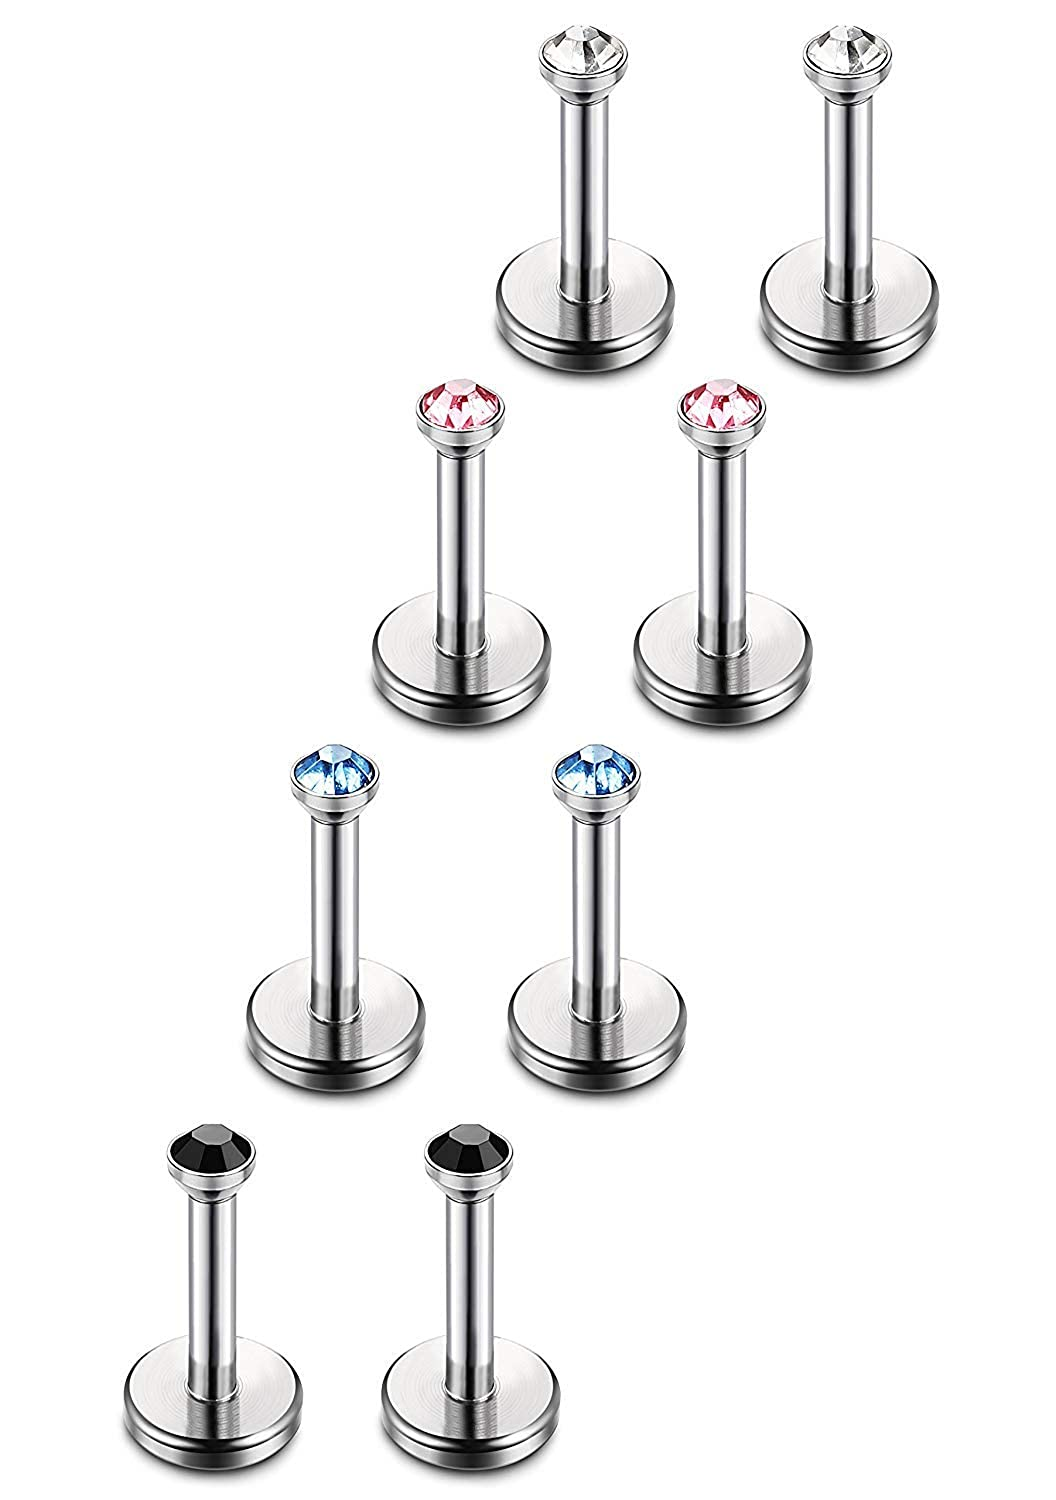 Subiceto 8pcs 18G Stainless Steel Lip Rings Labret Monroe Nose Studs Ear Piercings Tragus 6-12mm Bar Length SO-P07-6MM